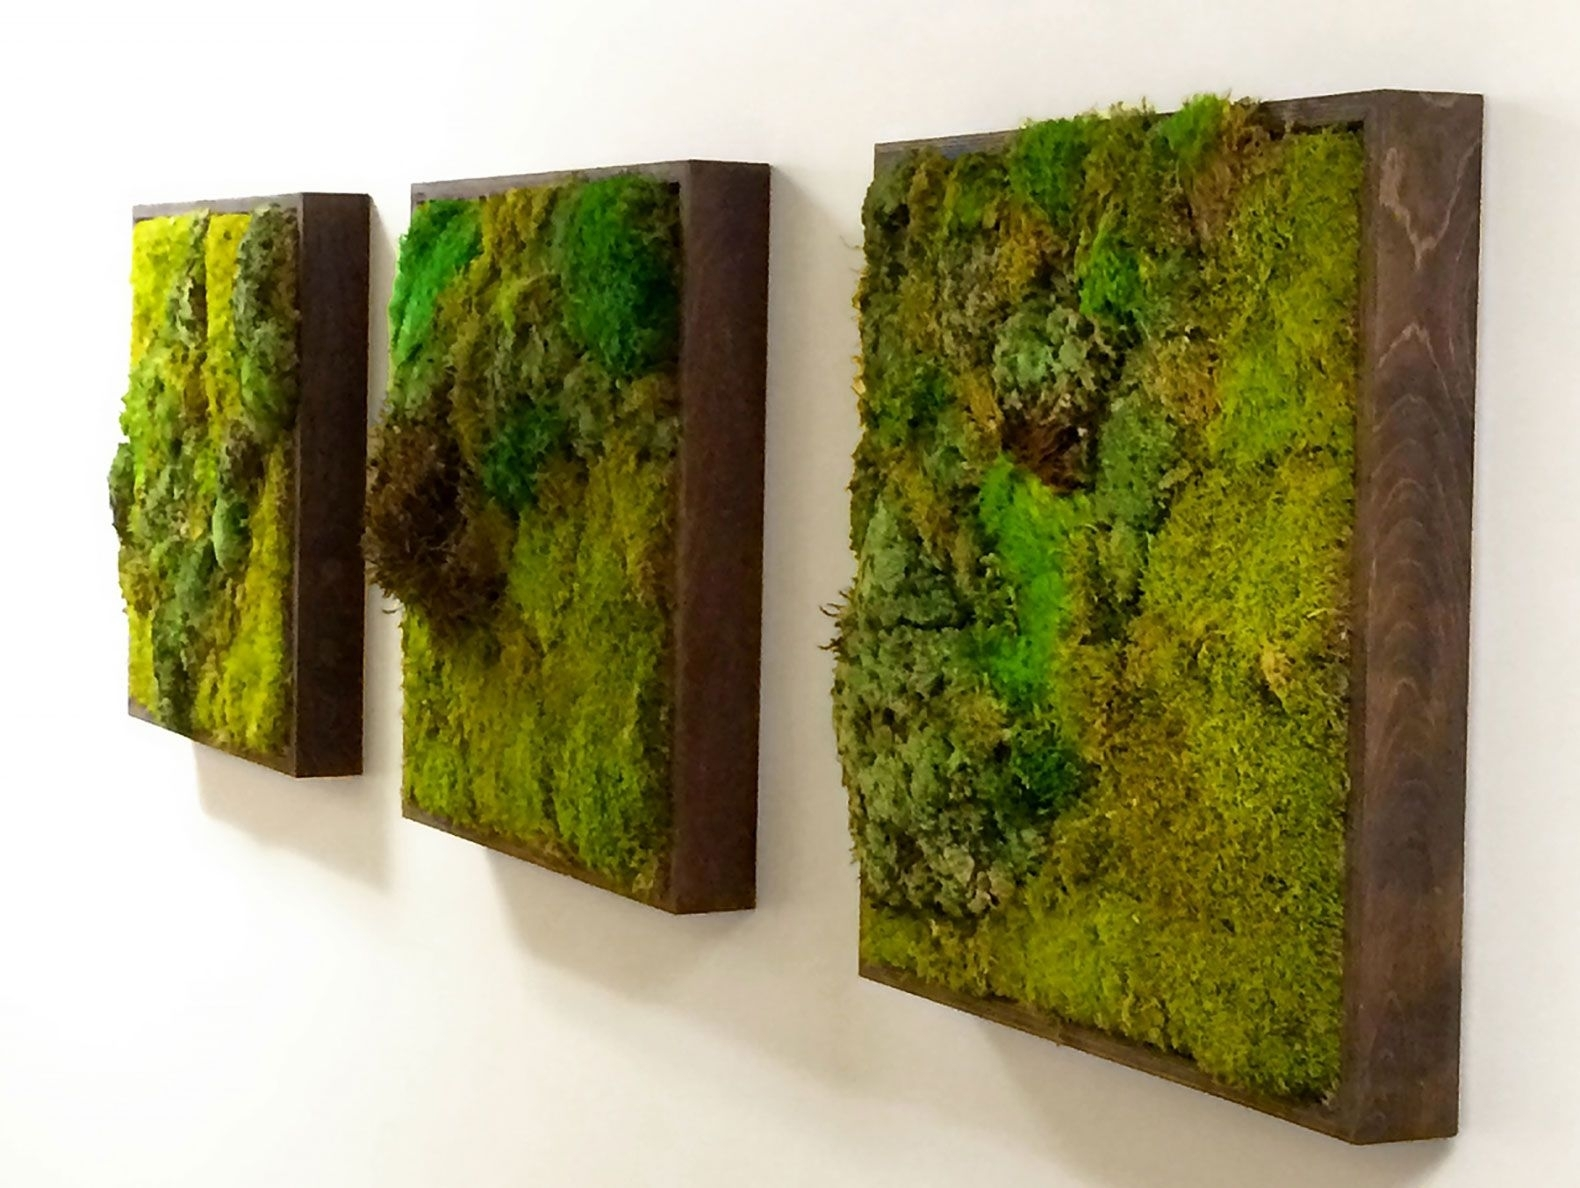 Moss Walls: The Newest Trend In Biophilic Interiors | Art 3 X within Moss Wall Art (Image 14 of 20)